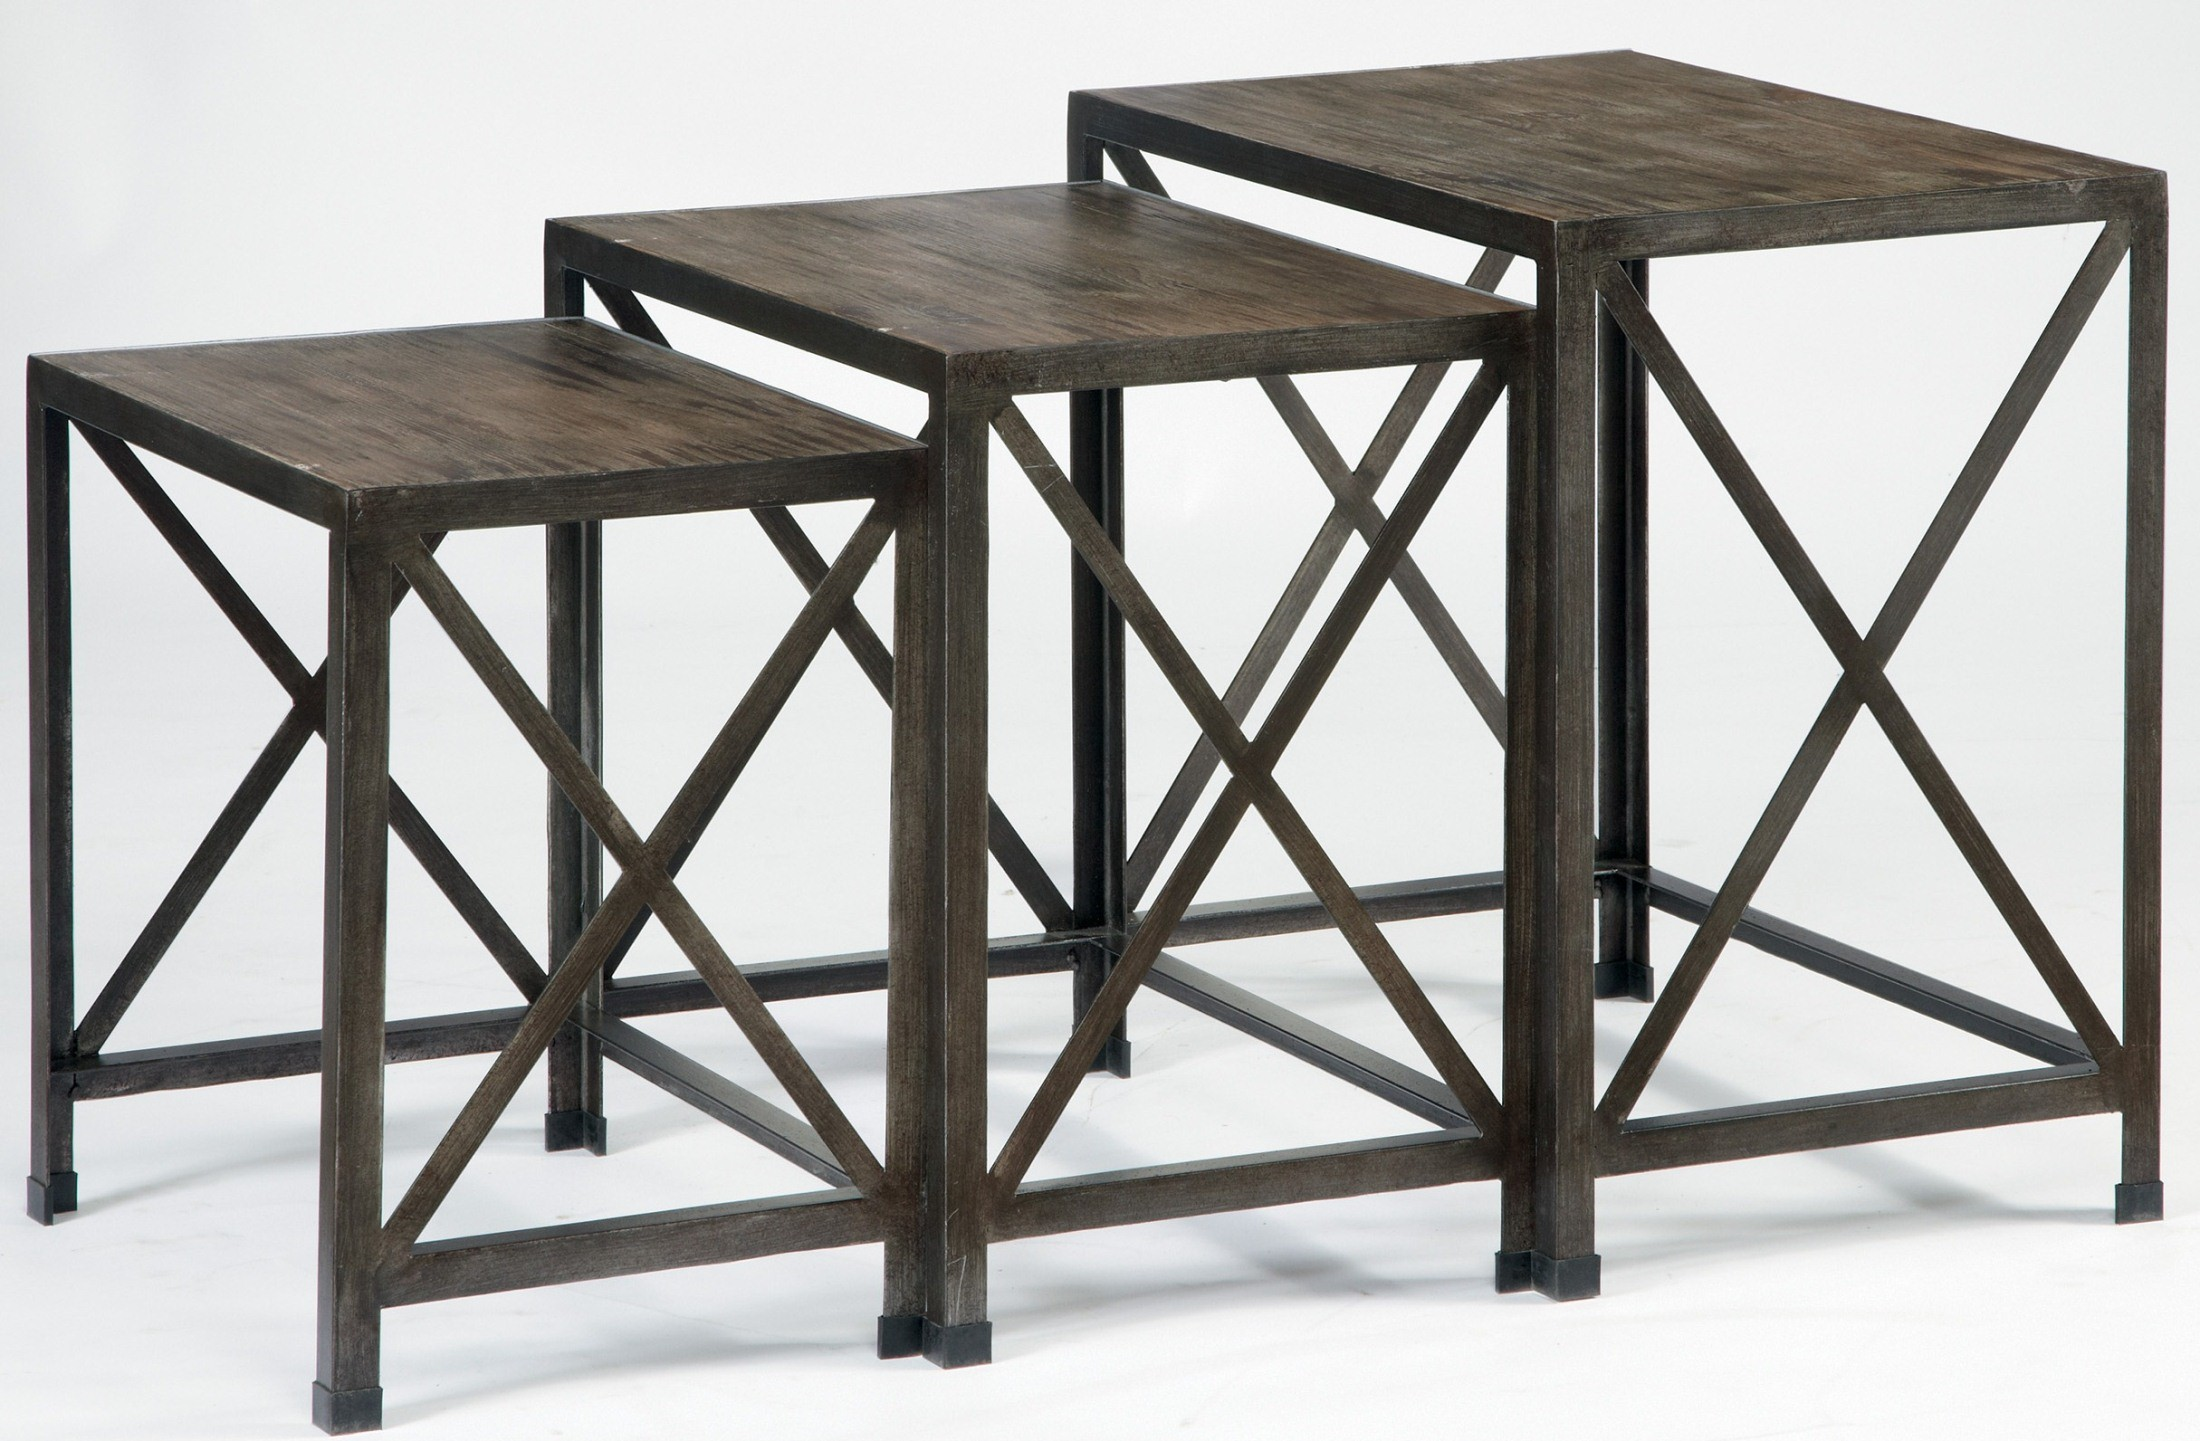 Vennilux Occasional Table Set from Ashley T500